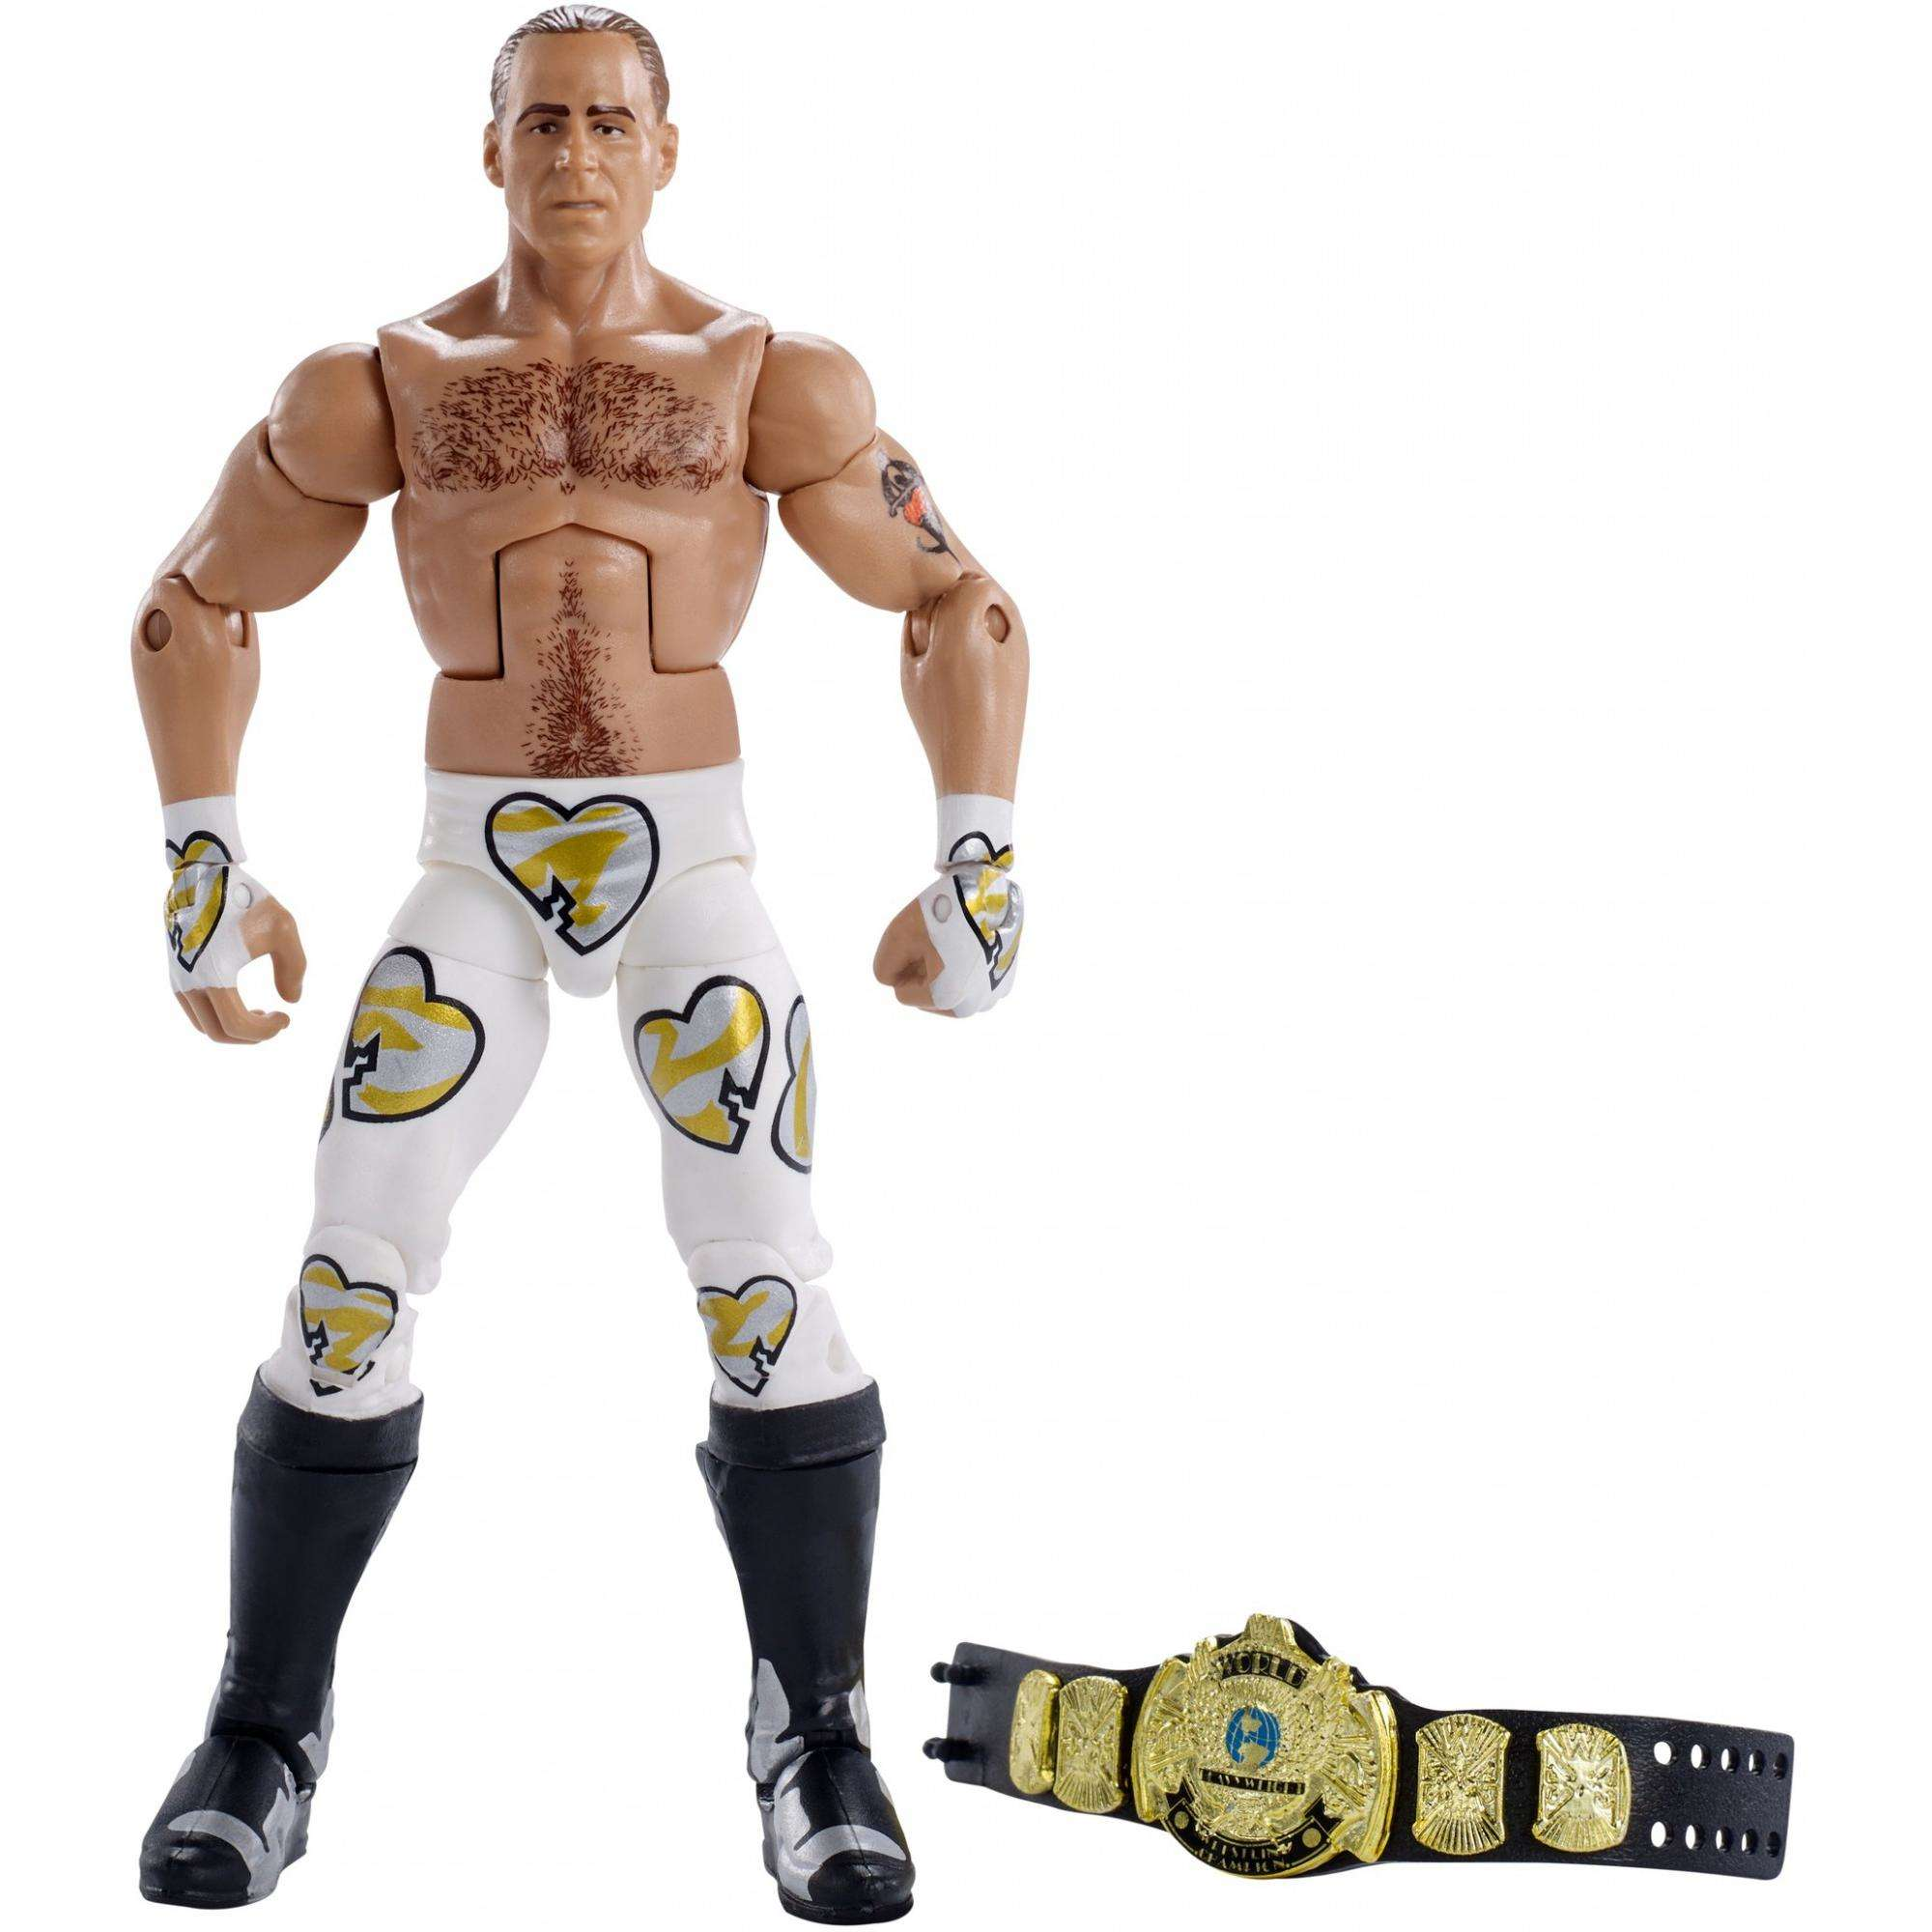 WWE Wrestlemania Elite Shawn Michaels Figure - Wrestlemania 12